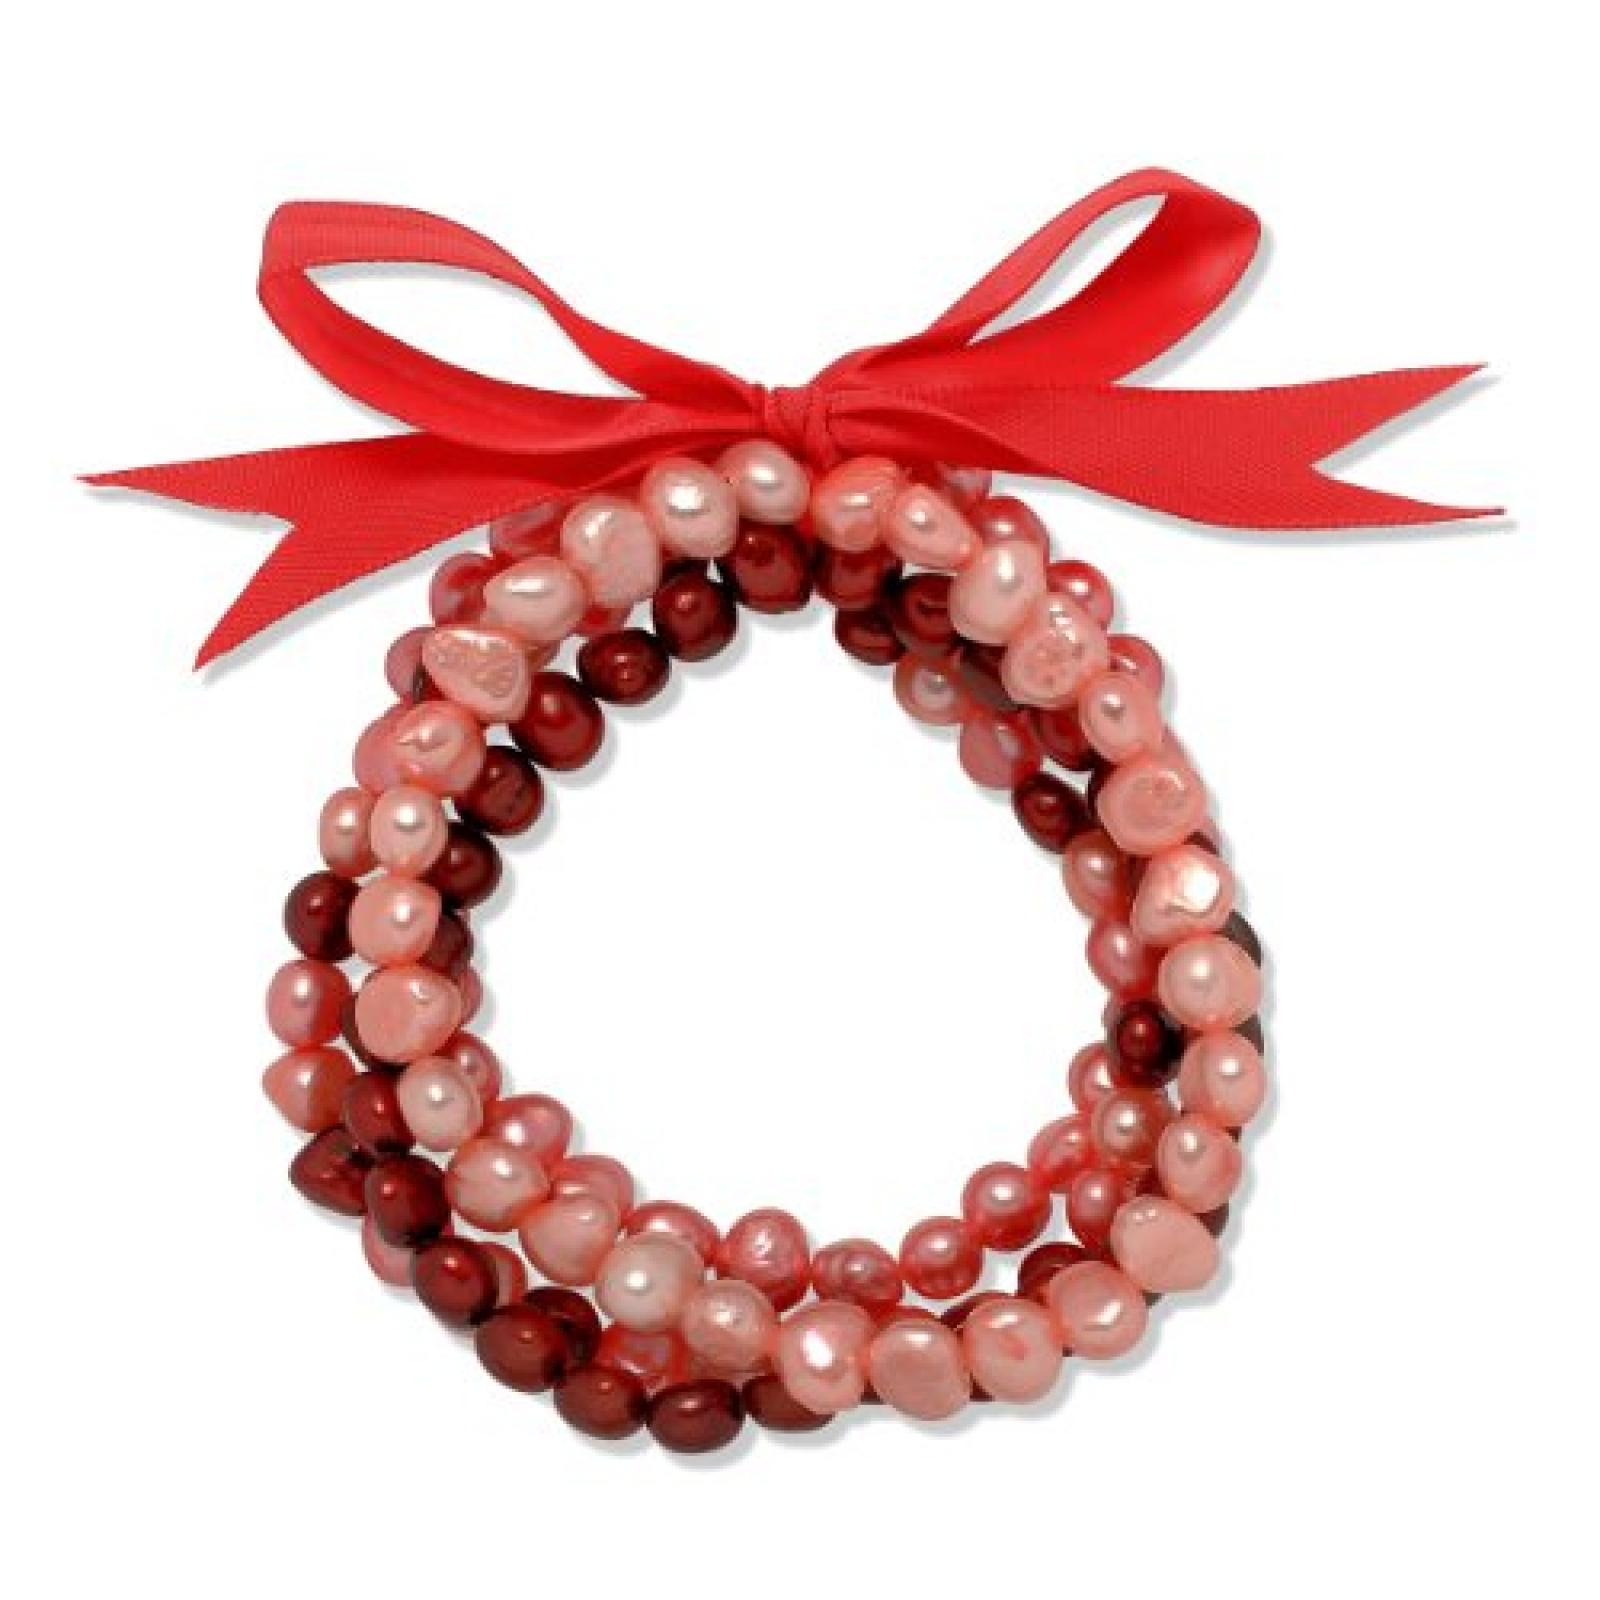 Valero Pearls Fashion Collection Damen-Armband Hochwertige Süßwasser-Zuchtperlen in ca.  5 mm Oval rosa / pink / purple  Satin rot  19 cm   60020088